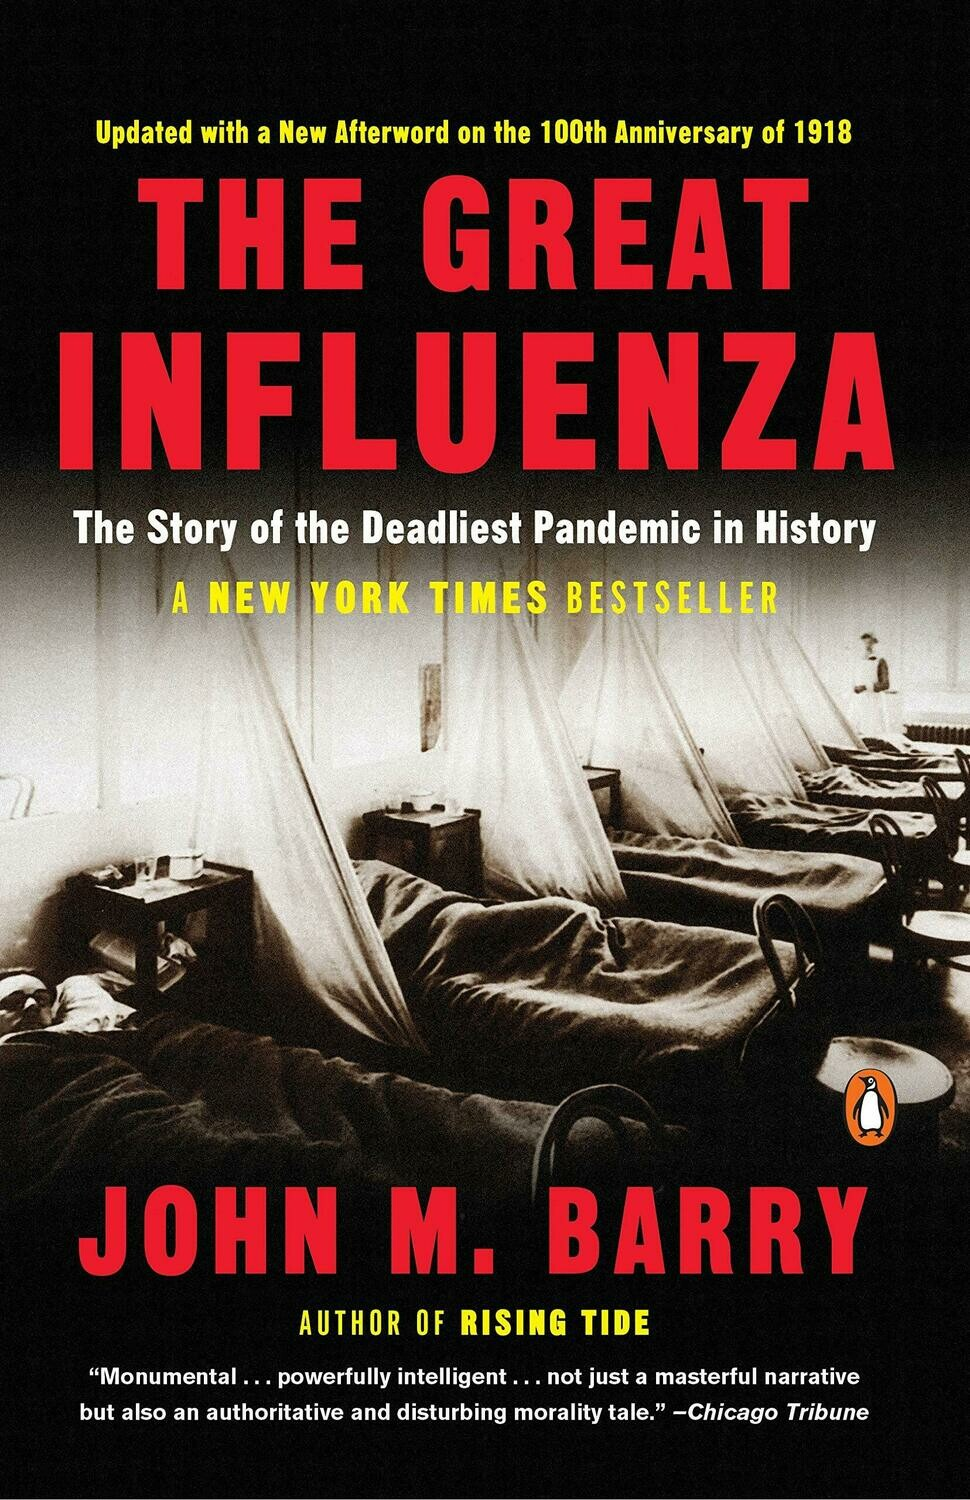 The Great Influenza: The Story of the Deadliest Pandemic in History Paperback – October 4, 2005